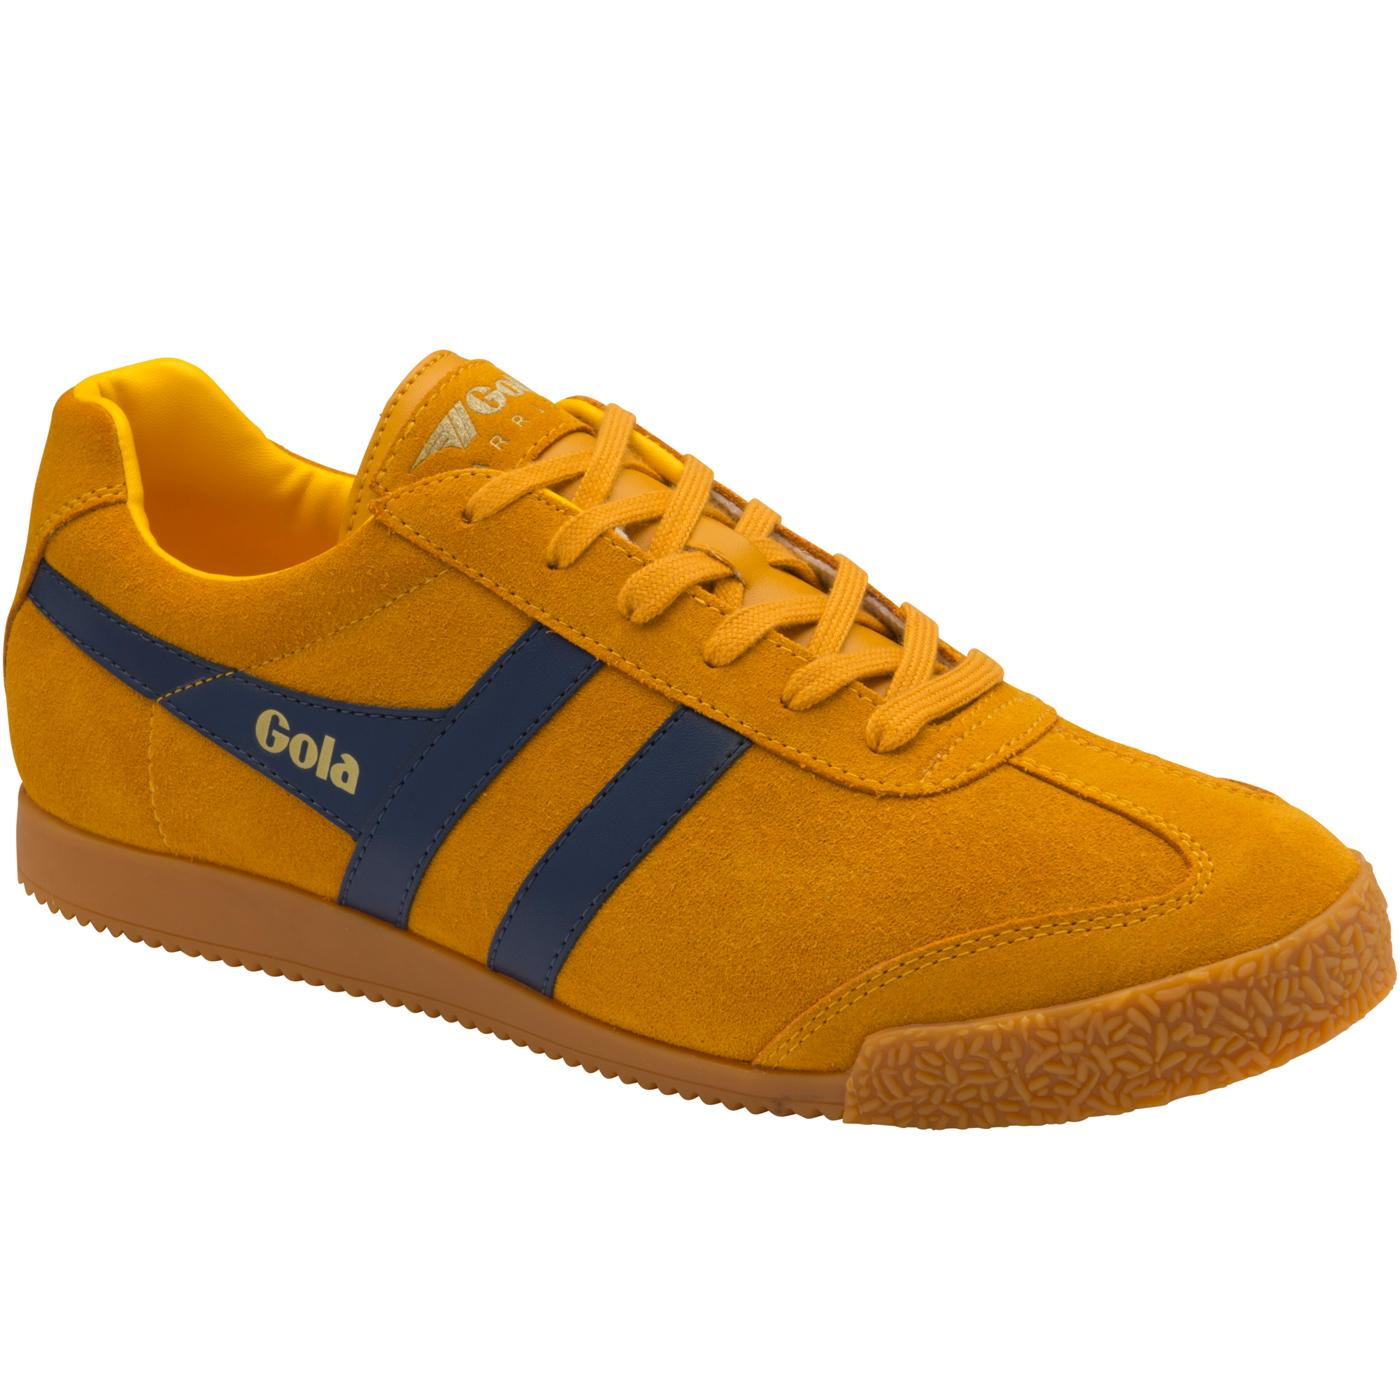 GOLA Harrier Suede Mens Retro 1970s Trainers (S/N)